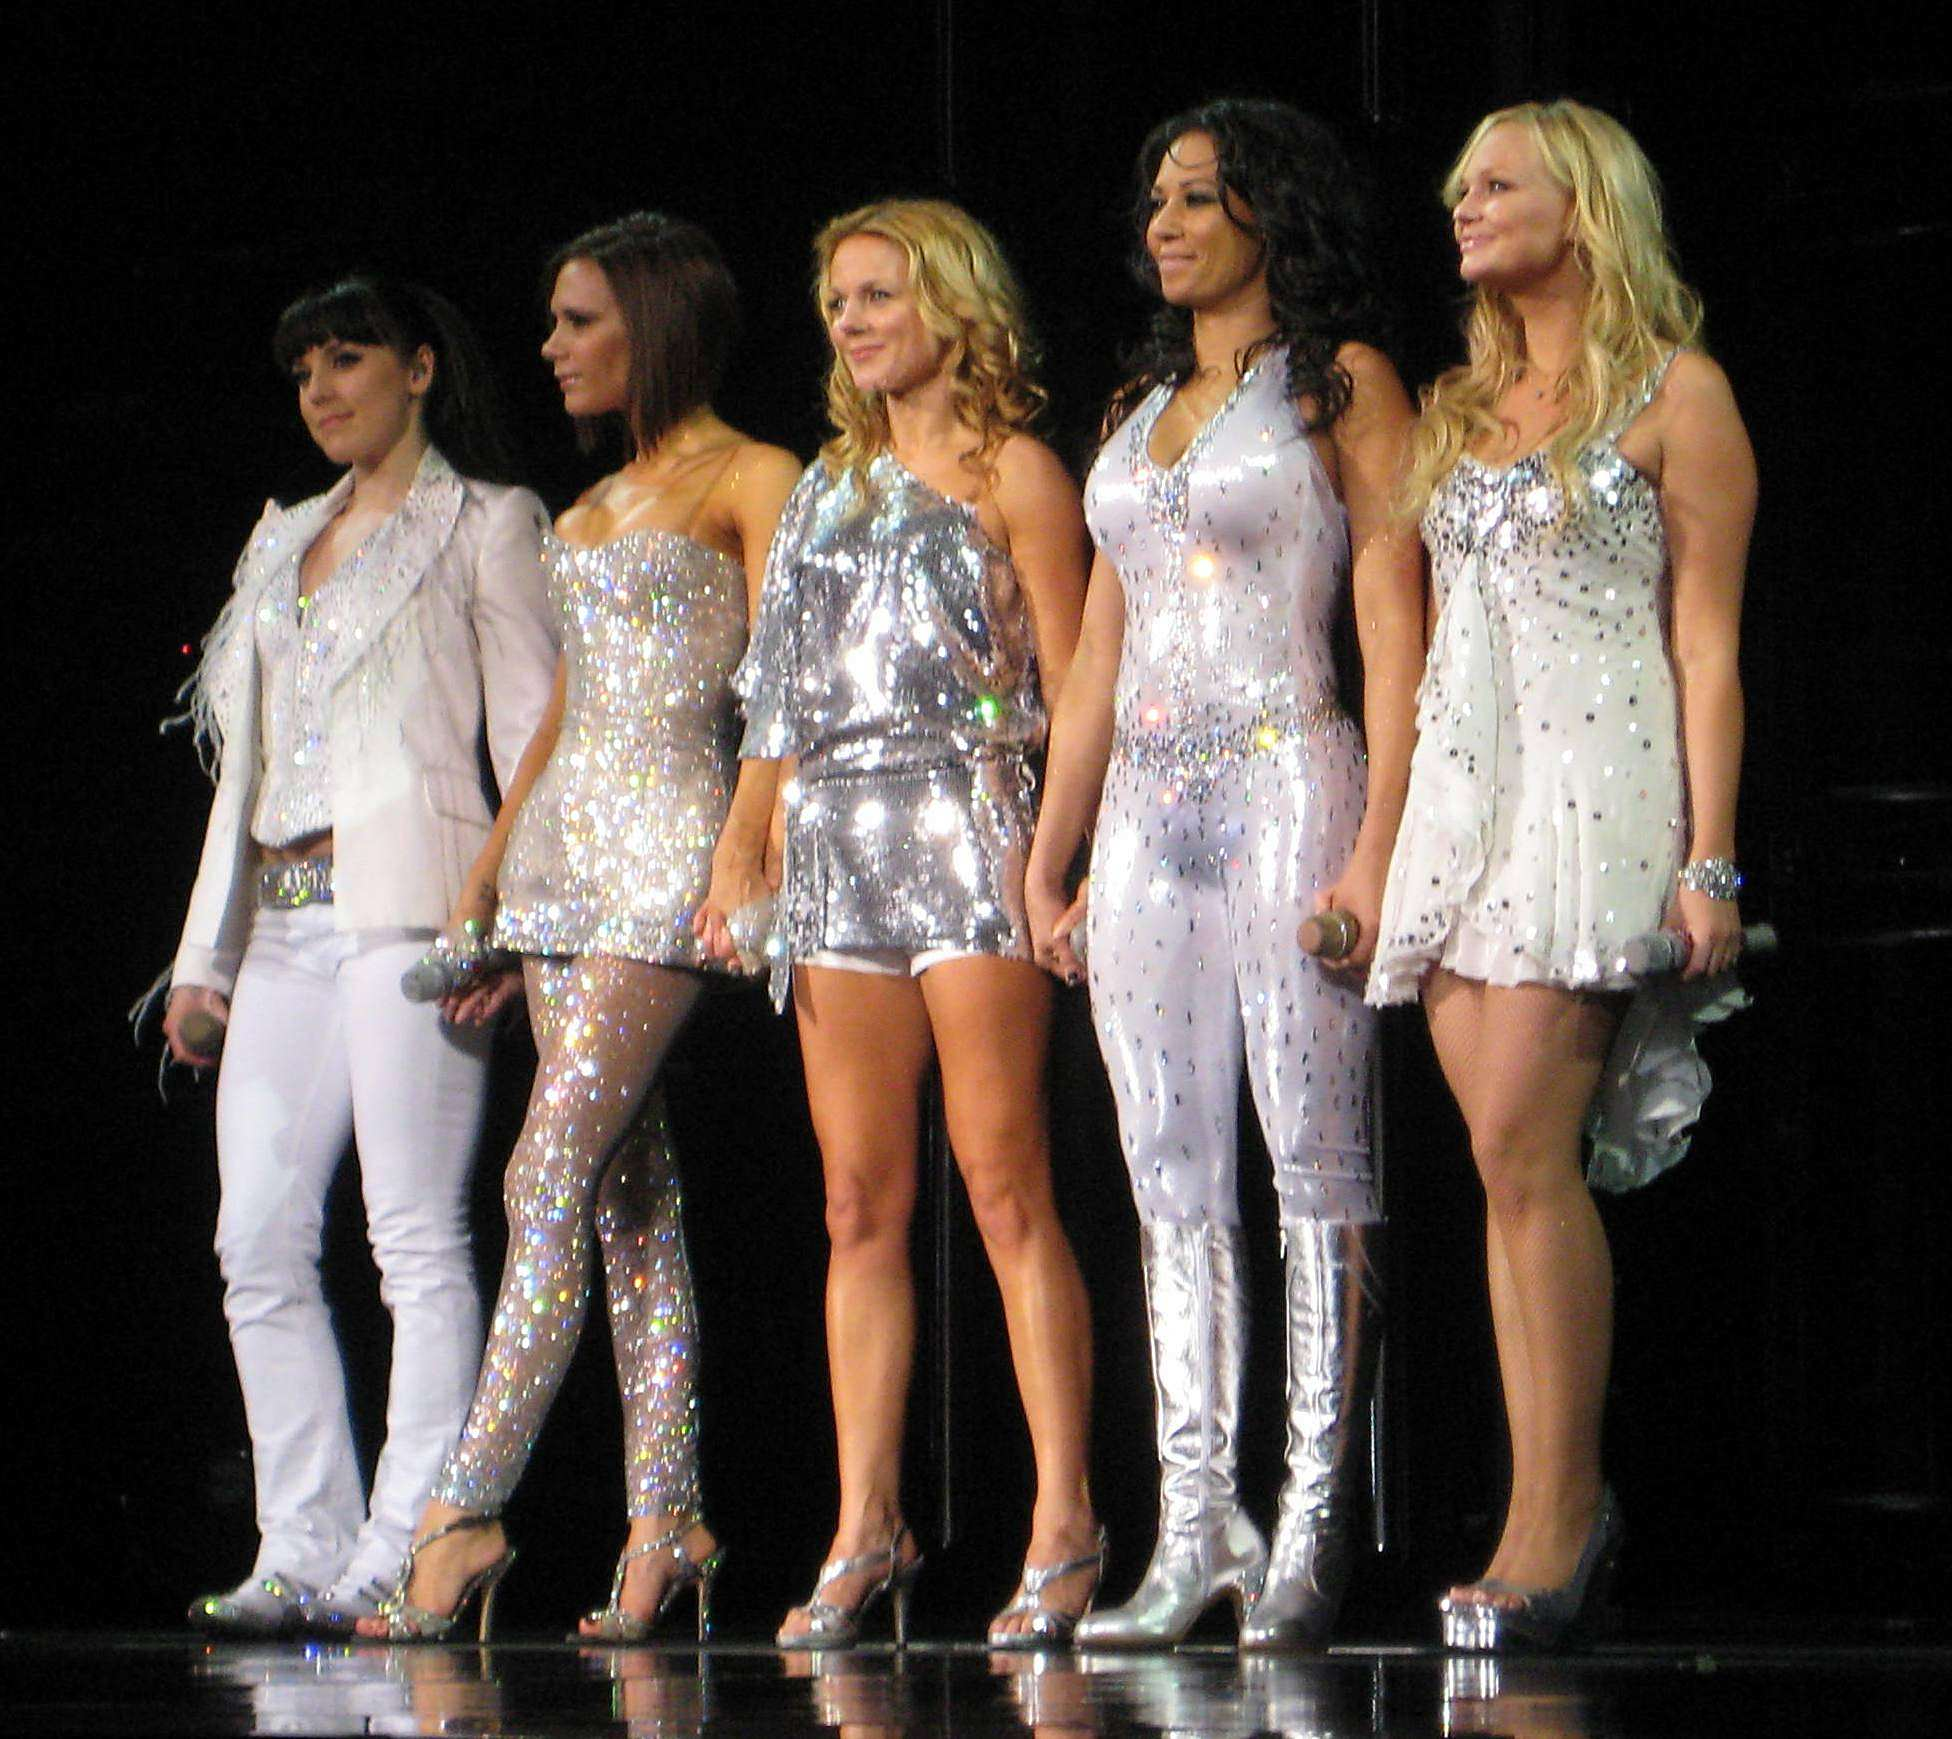 Spice_Girls_in_Toronto,_Ontario